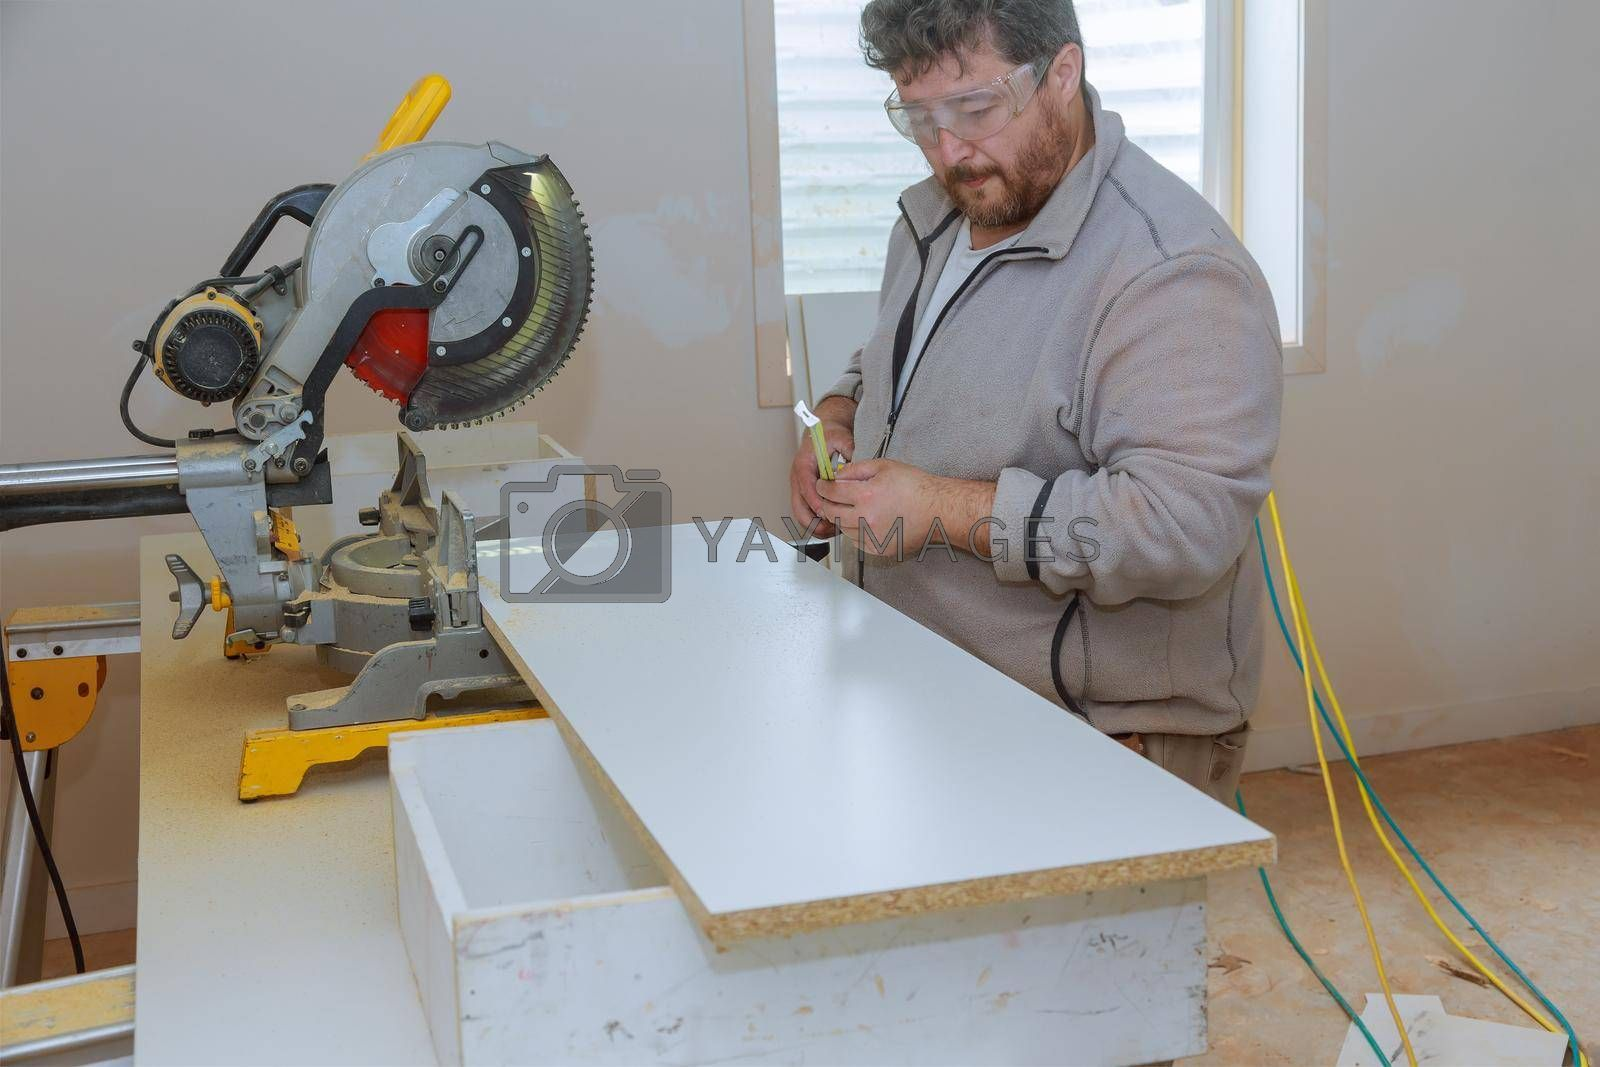 Building contractor worker using measuring and marking a board before cutting wooden shelf for a new building